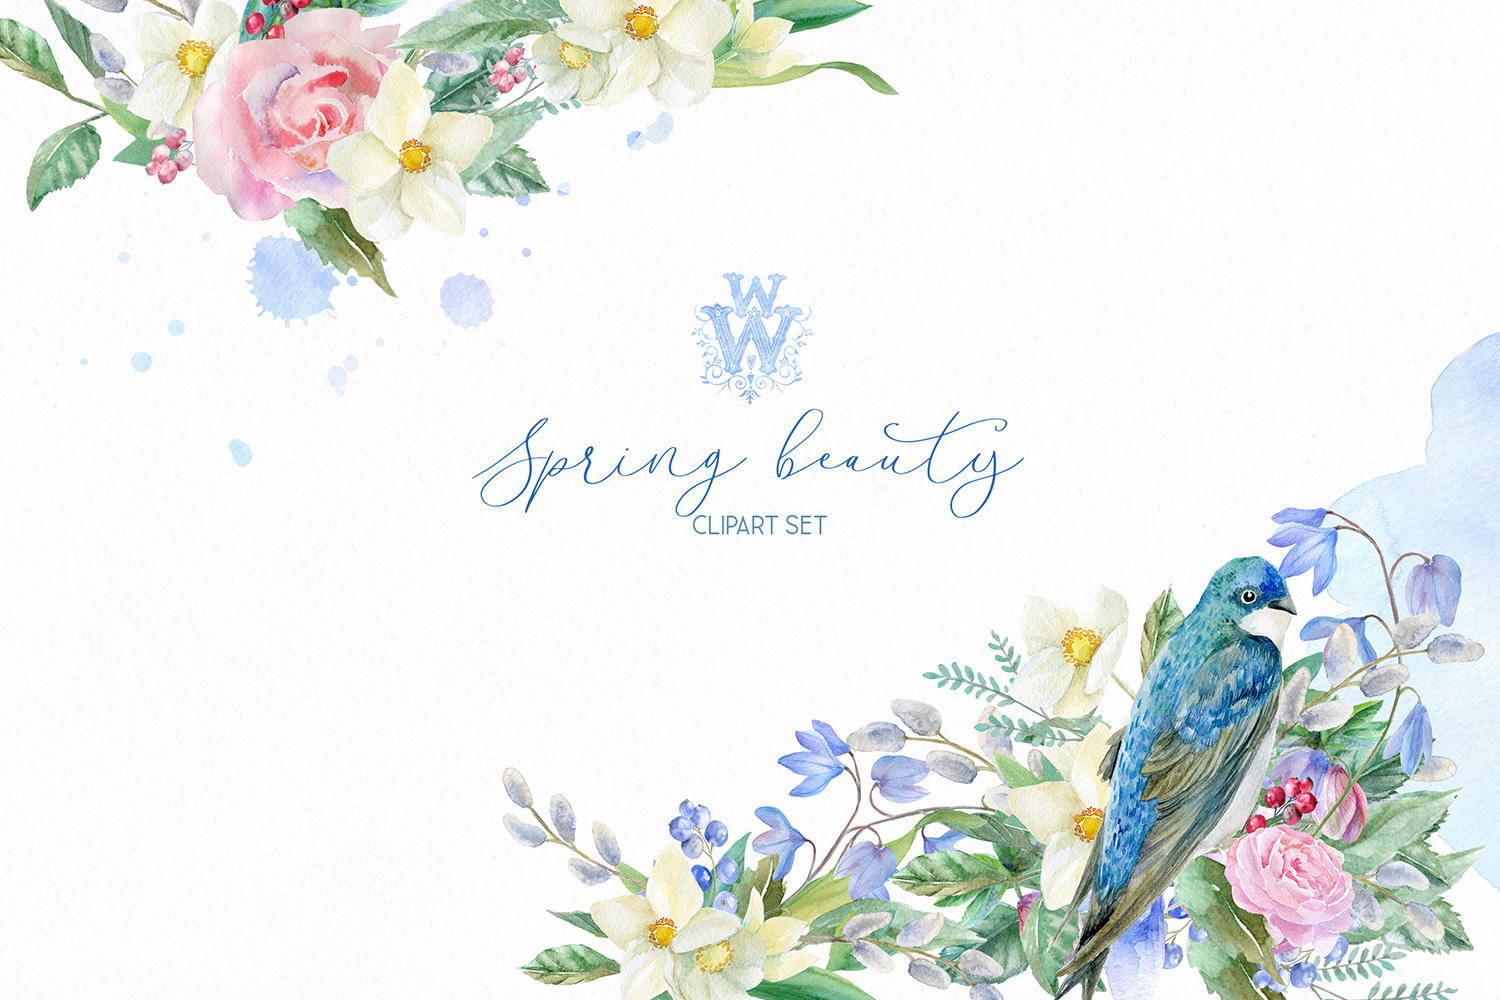 Watercolor spring bouquets clipart, wildflower heart wreath example image 1